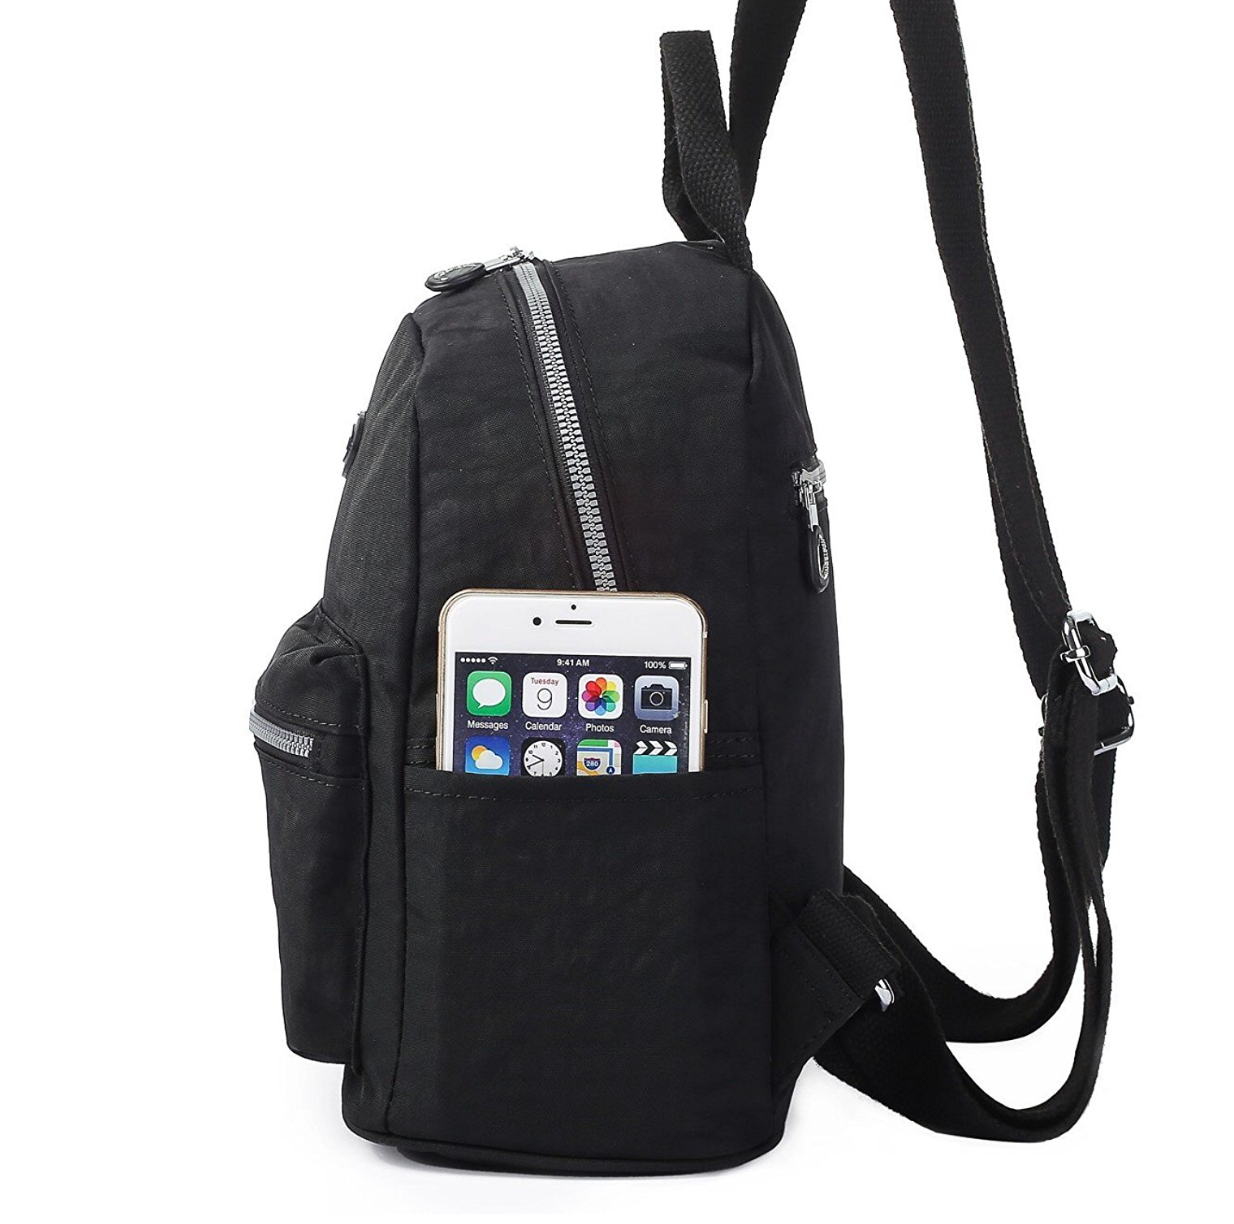 So I bought a black backpack. - It's a functional backpack. I tried it on with a few outfits and it's cute. It'll fit passports, lipgloss, cellphone, earbuds,a neck pillow and I'll be hands free and matching.I can also hold it by the handle if I feel a pickpocketer hovering.